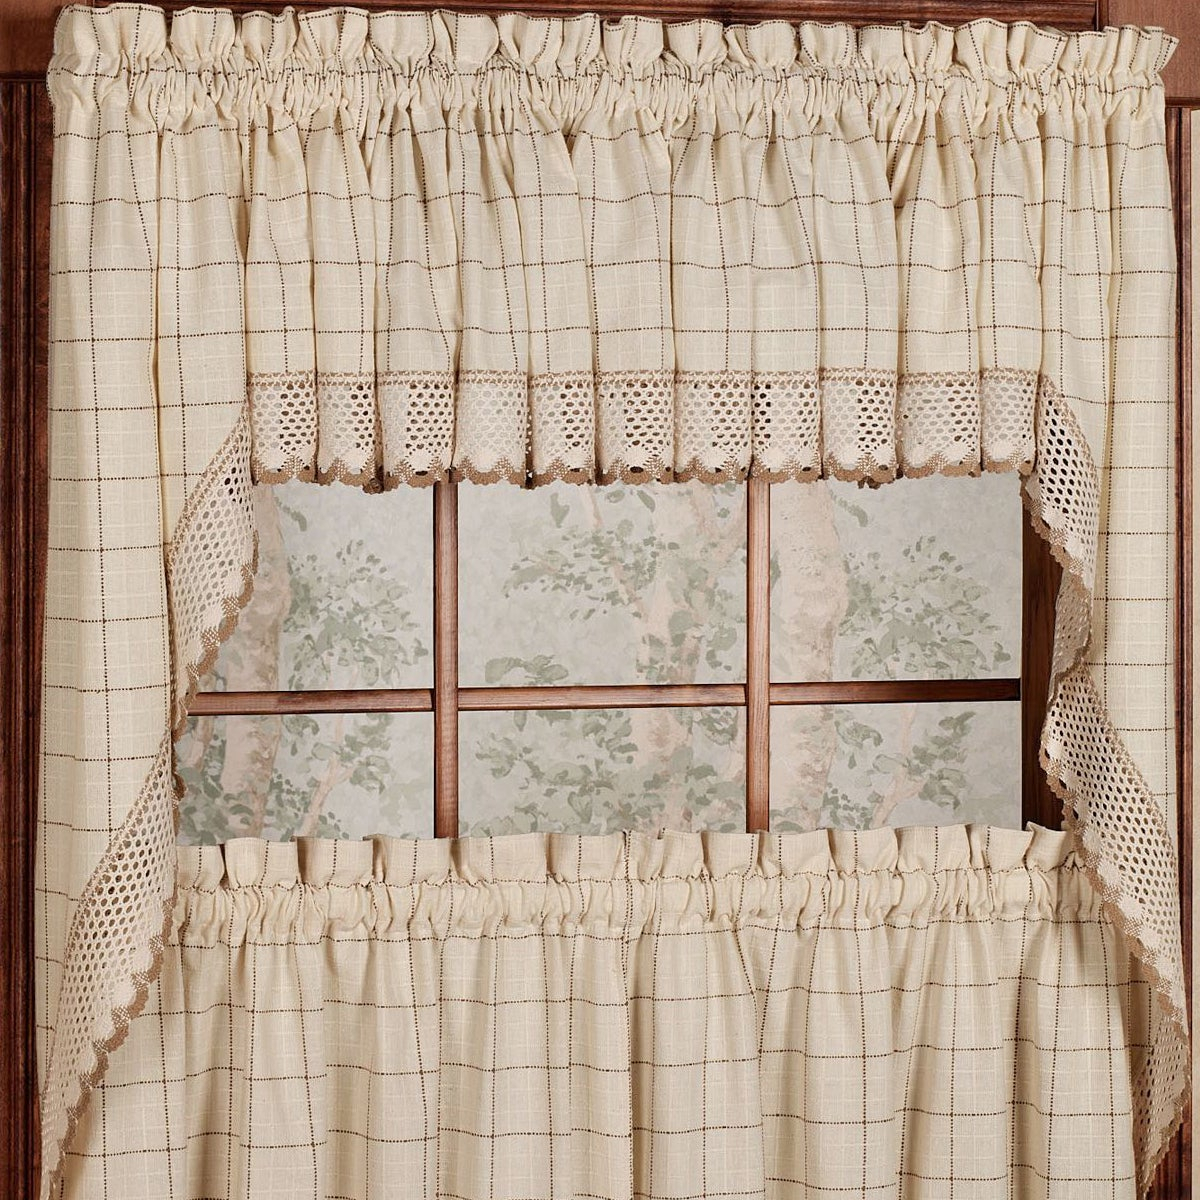 Cotton Classic Toast Window Pane Pattern And Crotchet Trim Tiers, Swags And Valance Options Throughout Cotton Classic Toast Window Pane Pattern And Crotchet Trim Tiers (View 5 of 20)